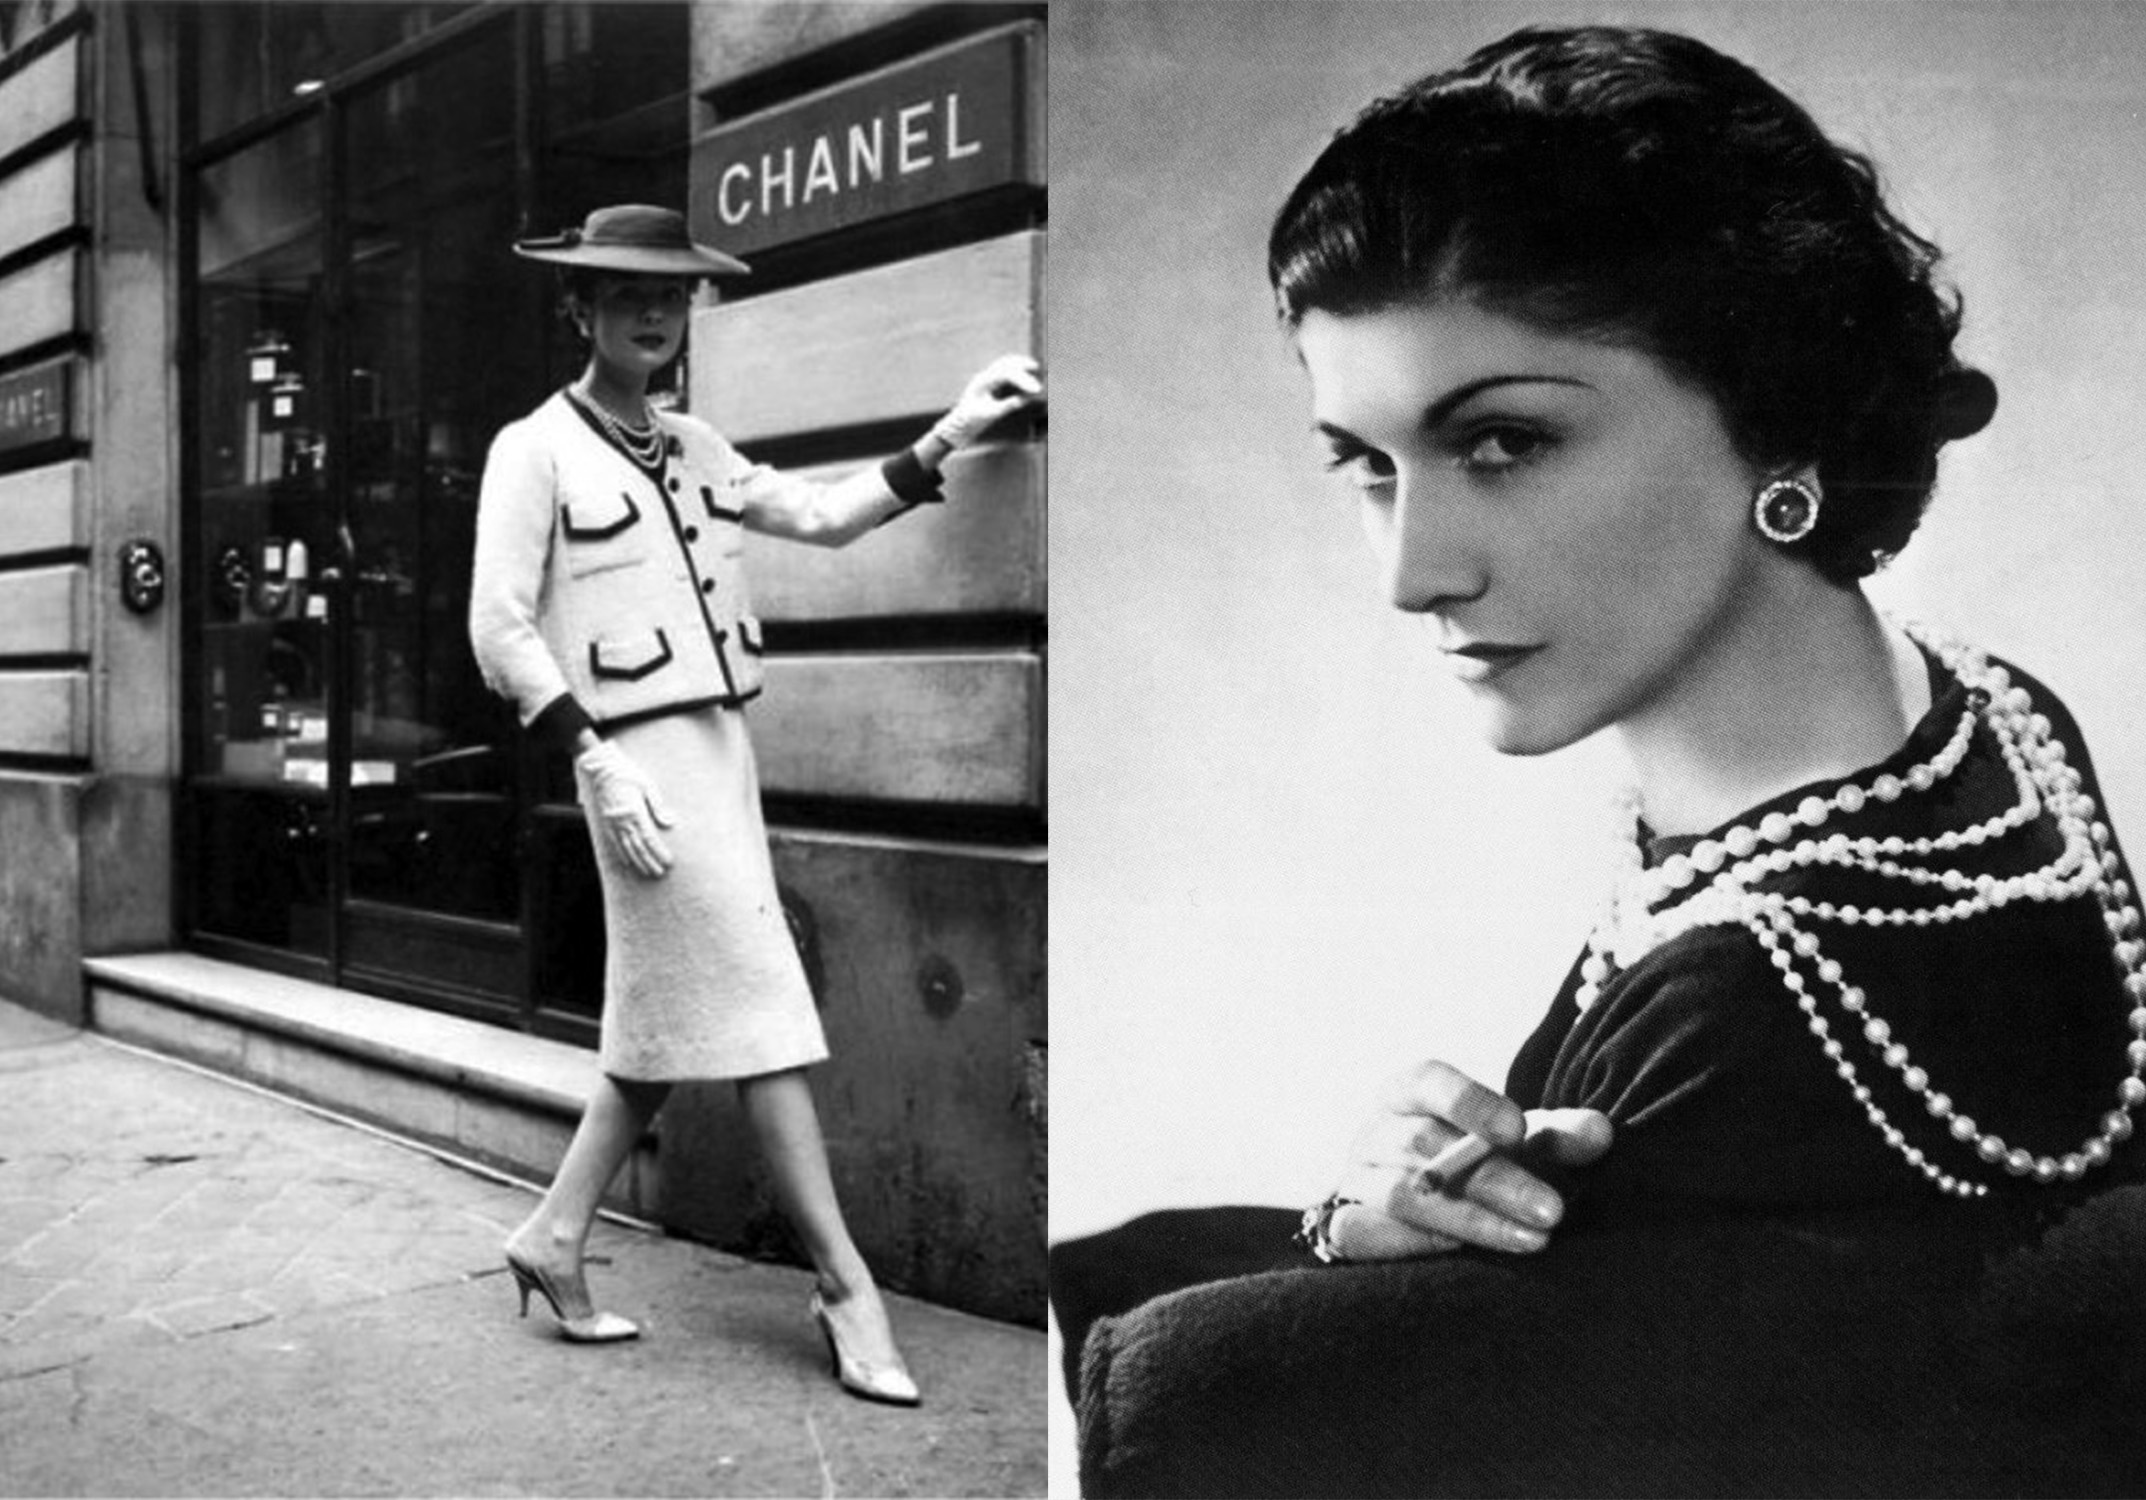 coco chanel 3 essay Essay coco chanel: a fashion icon legacy coco chanel: a fashion icon legacy thinking of fashion, many names come into mind: gucci, louis vuitton, dior, burberry.